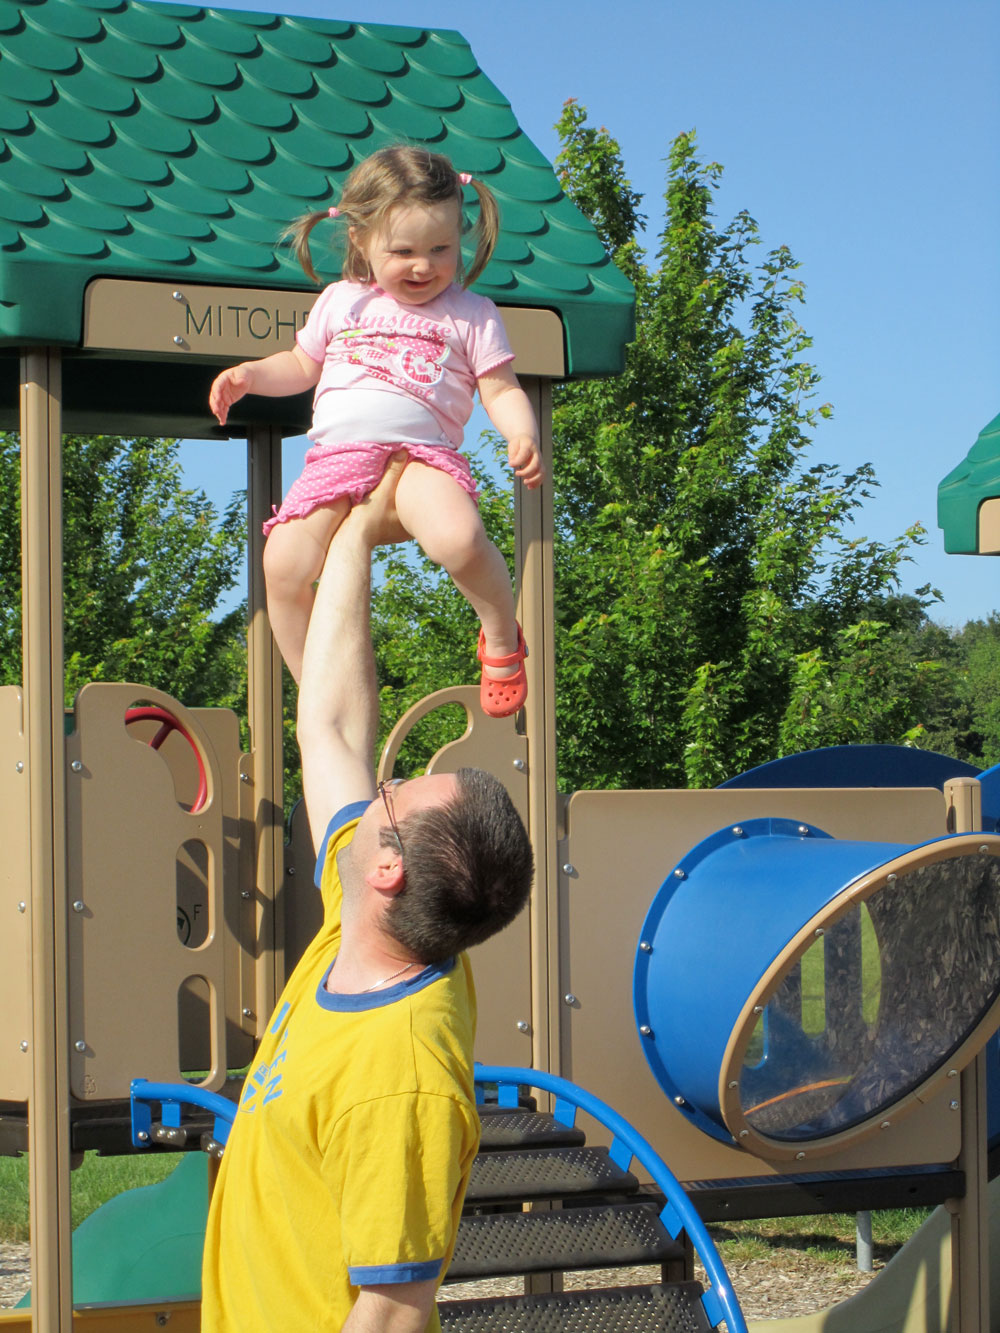 Richie lifting Gigi high up in the air at the playground.